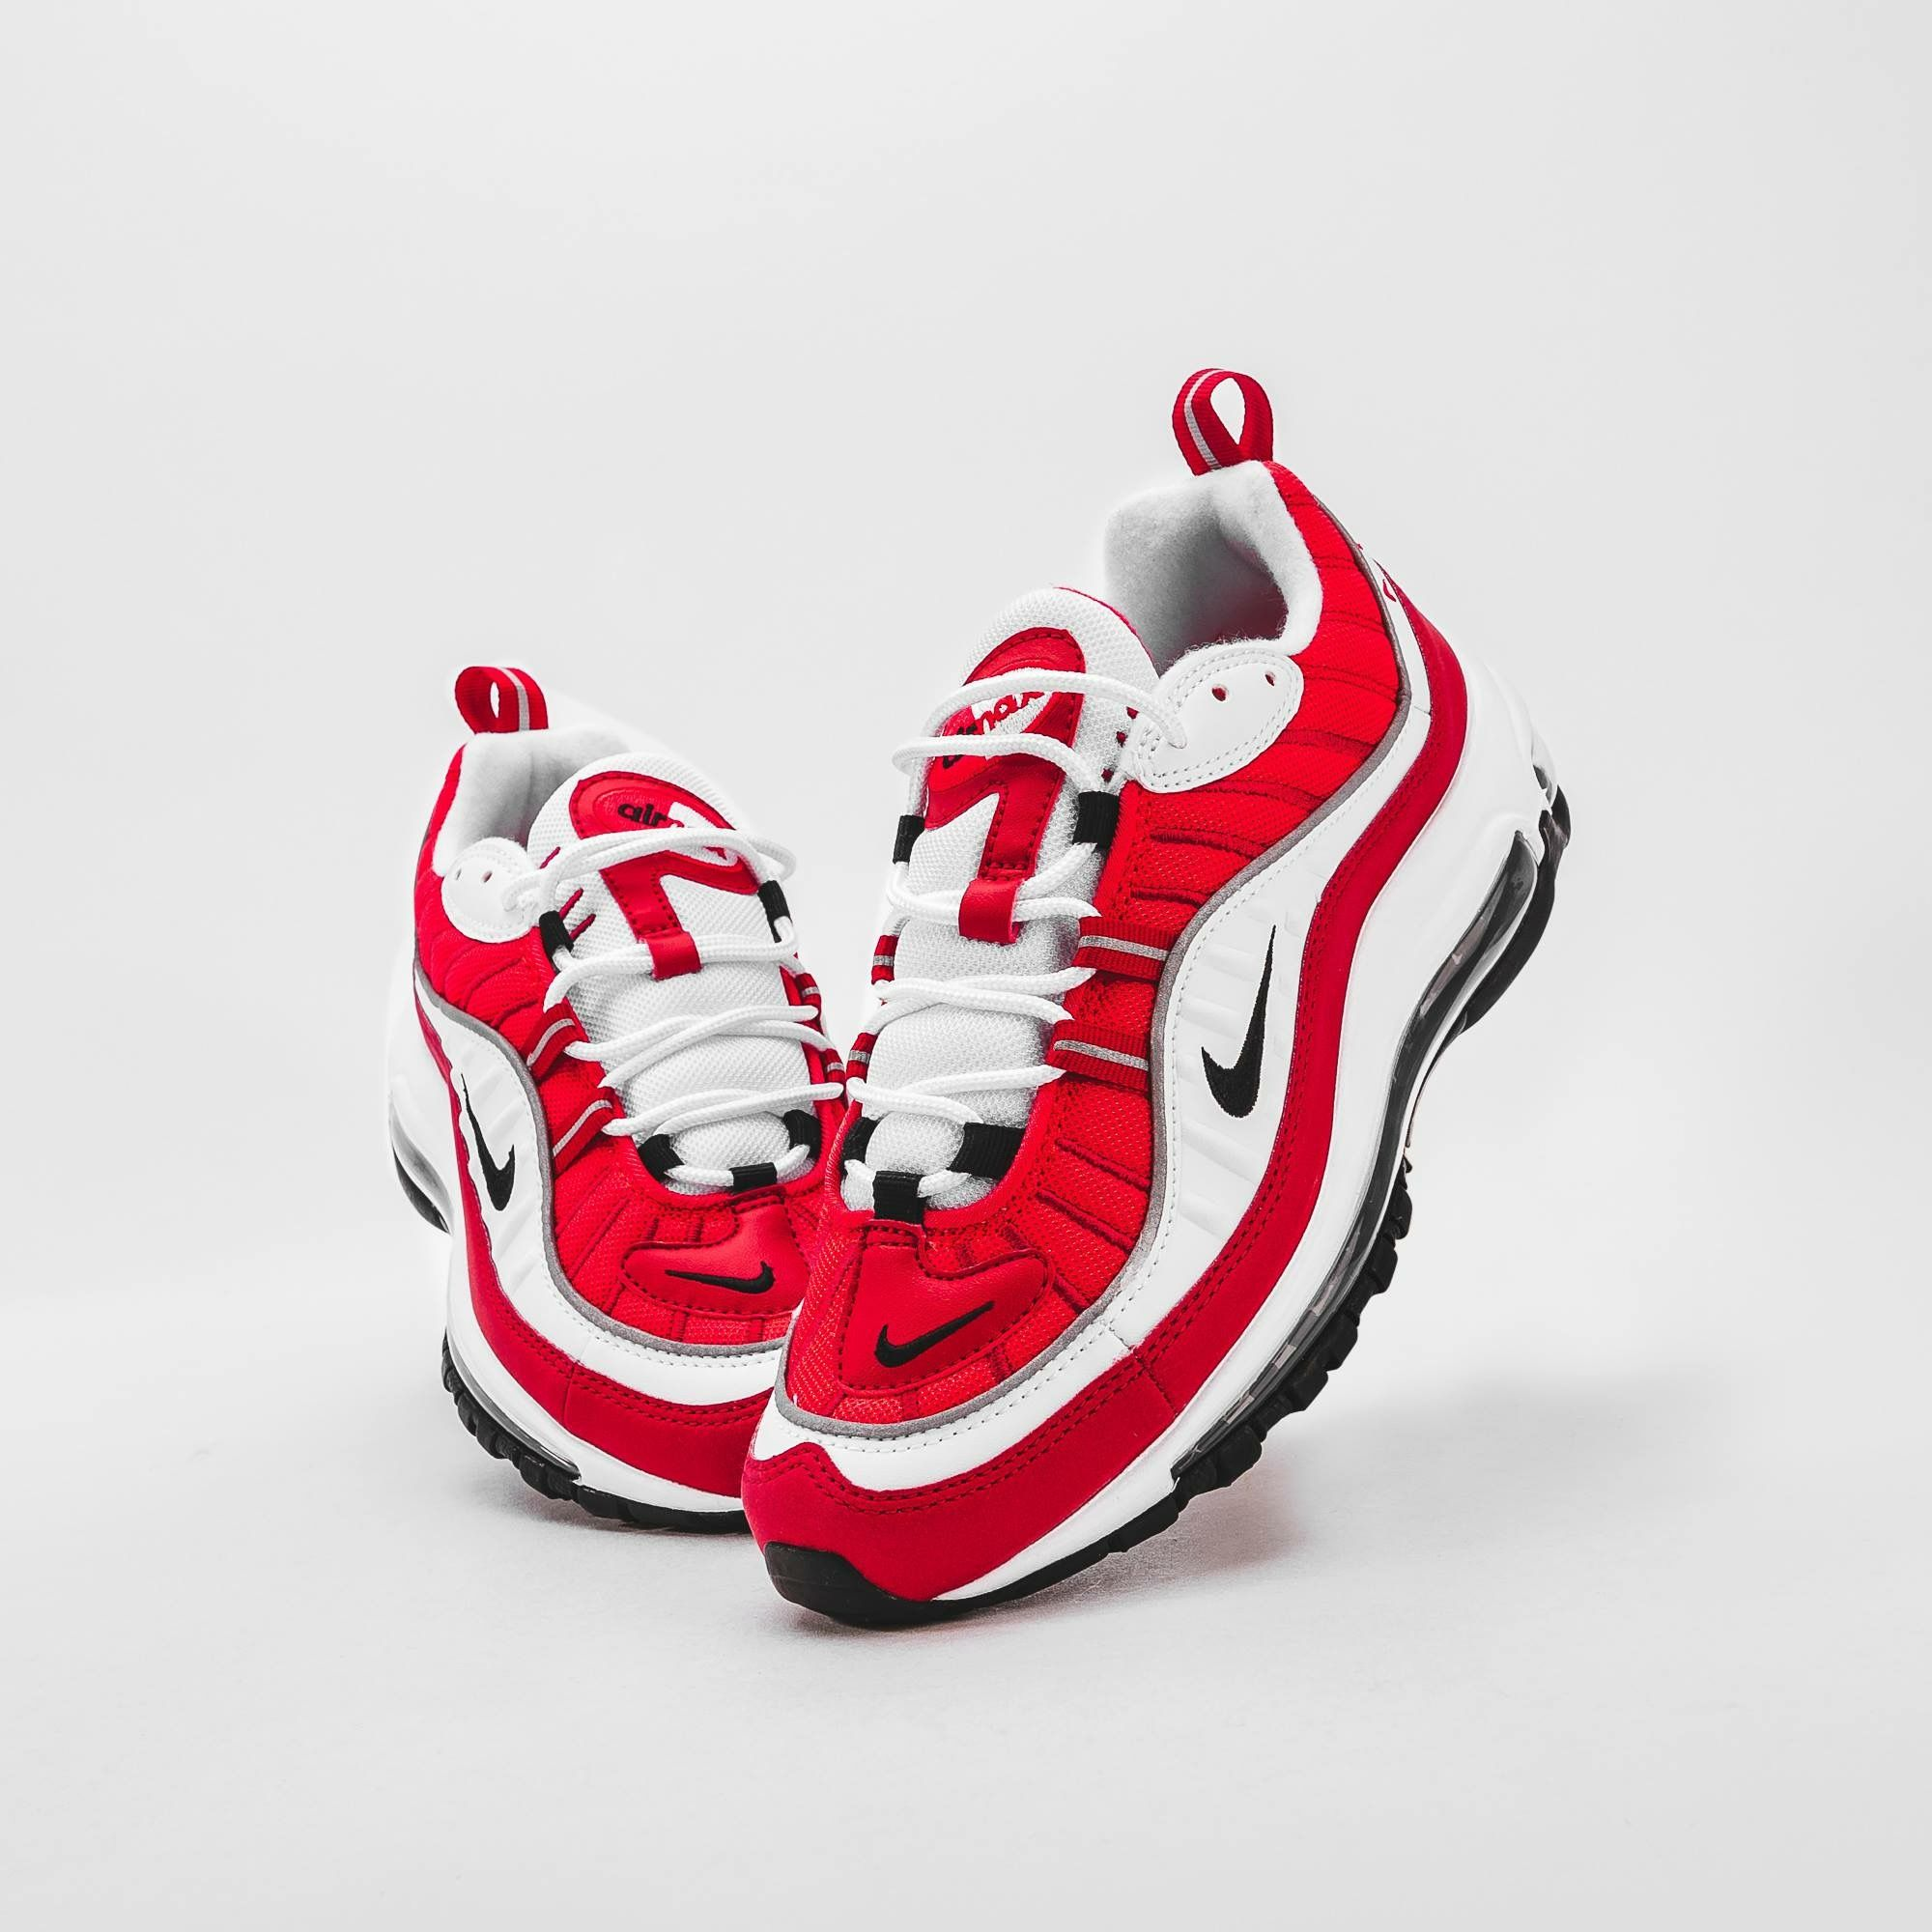 Nike Air Max 98 | Chaussure sport, Chaussure, Chaussures homme